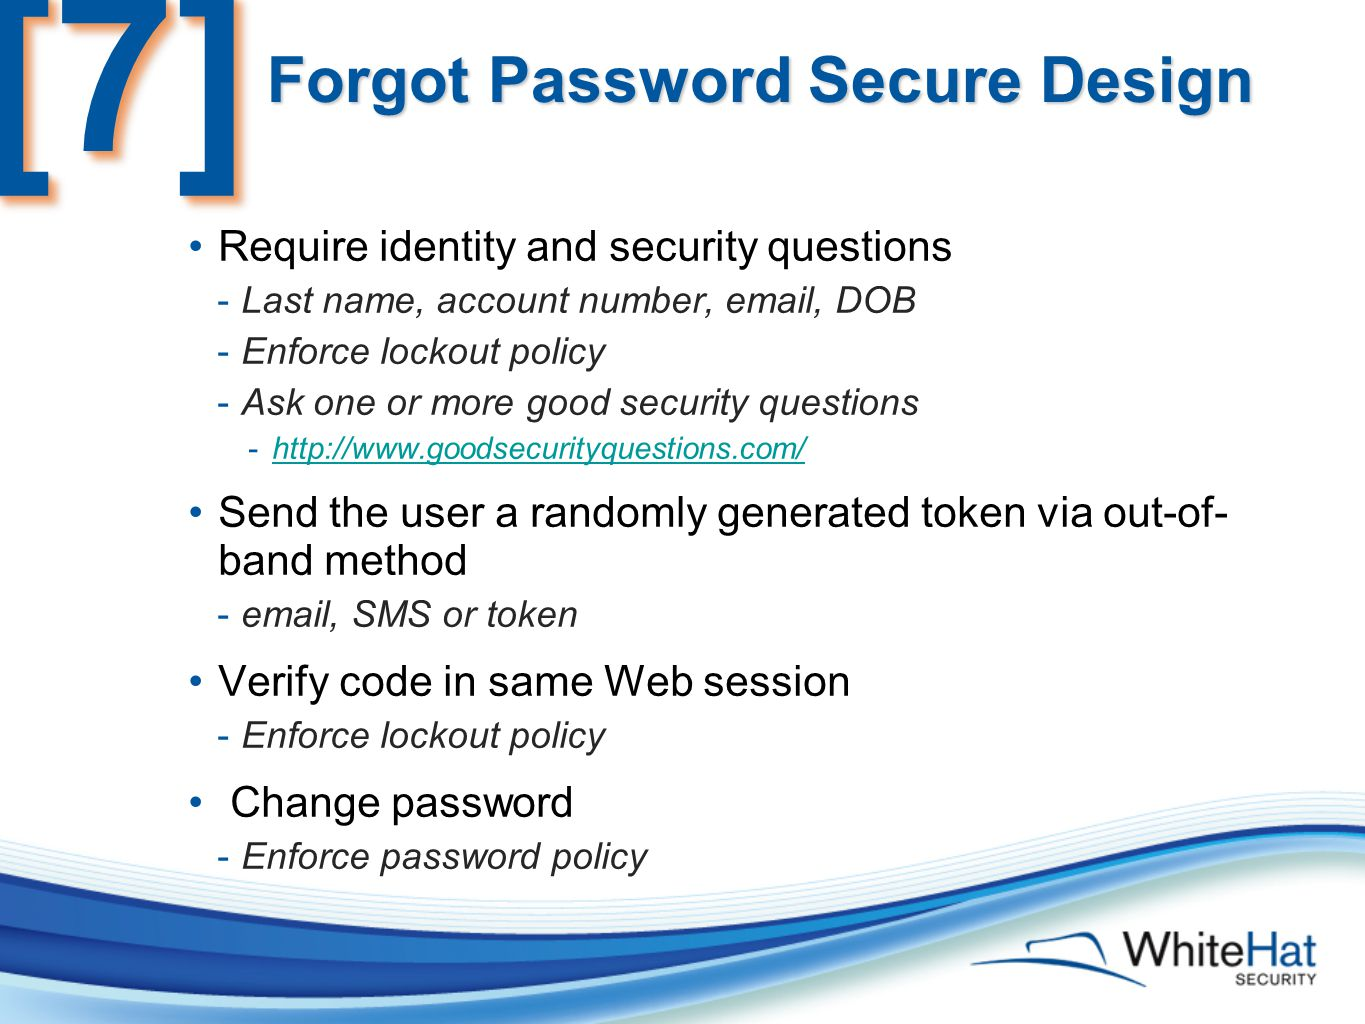 Forgot Password Secure Design Require identity and security questions -Last name, account number, email, DOB -Enforce lockout policy -Ask one or more good security questions -http://www.goodsecurityquestions.com/http://www.goodsecurityquestions.com/ Send the user a randomly generated token via out-of- band method -email, SMS or token Verify code in same Web session -Enforce lockout policy Change password -Enforce password policy [7][7]